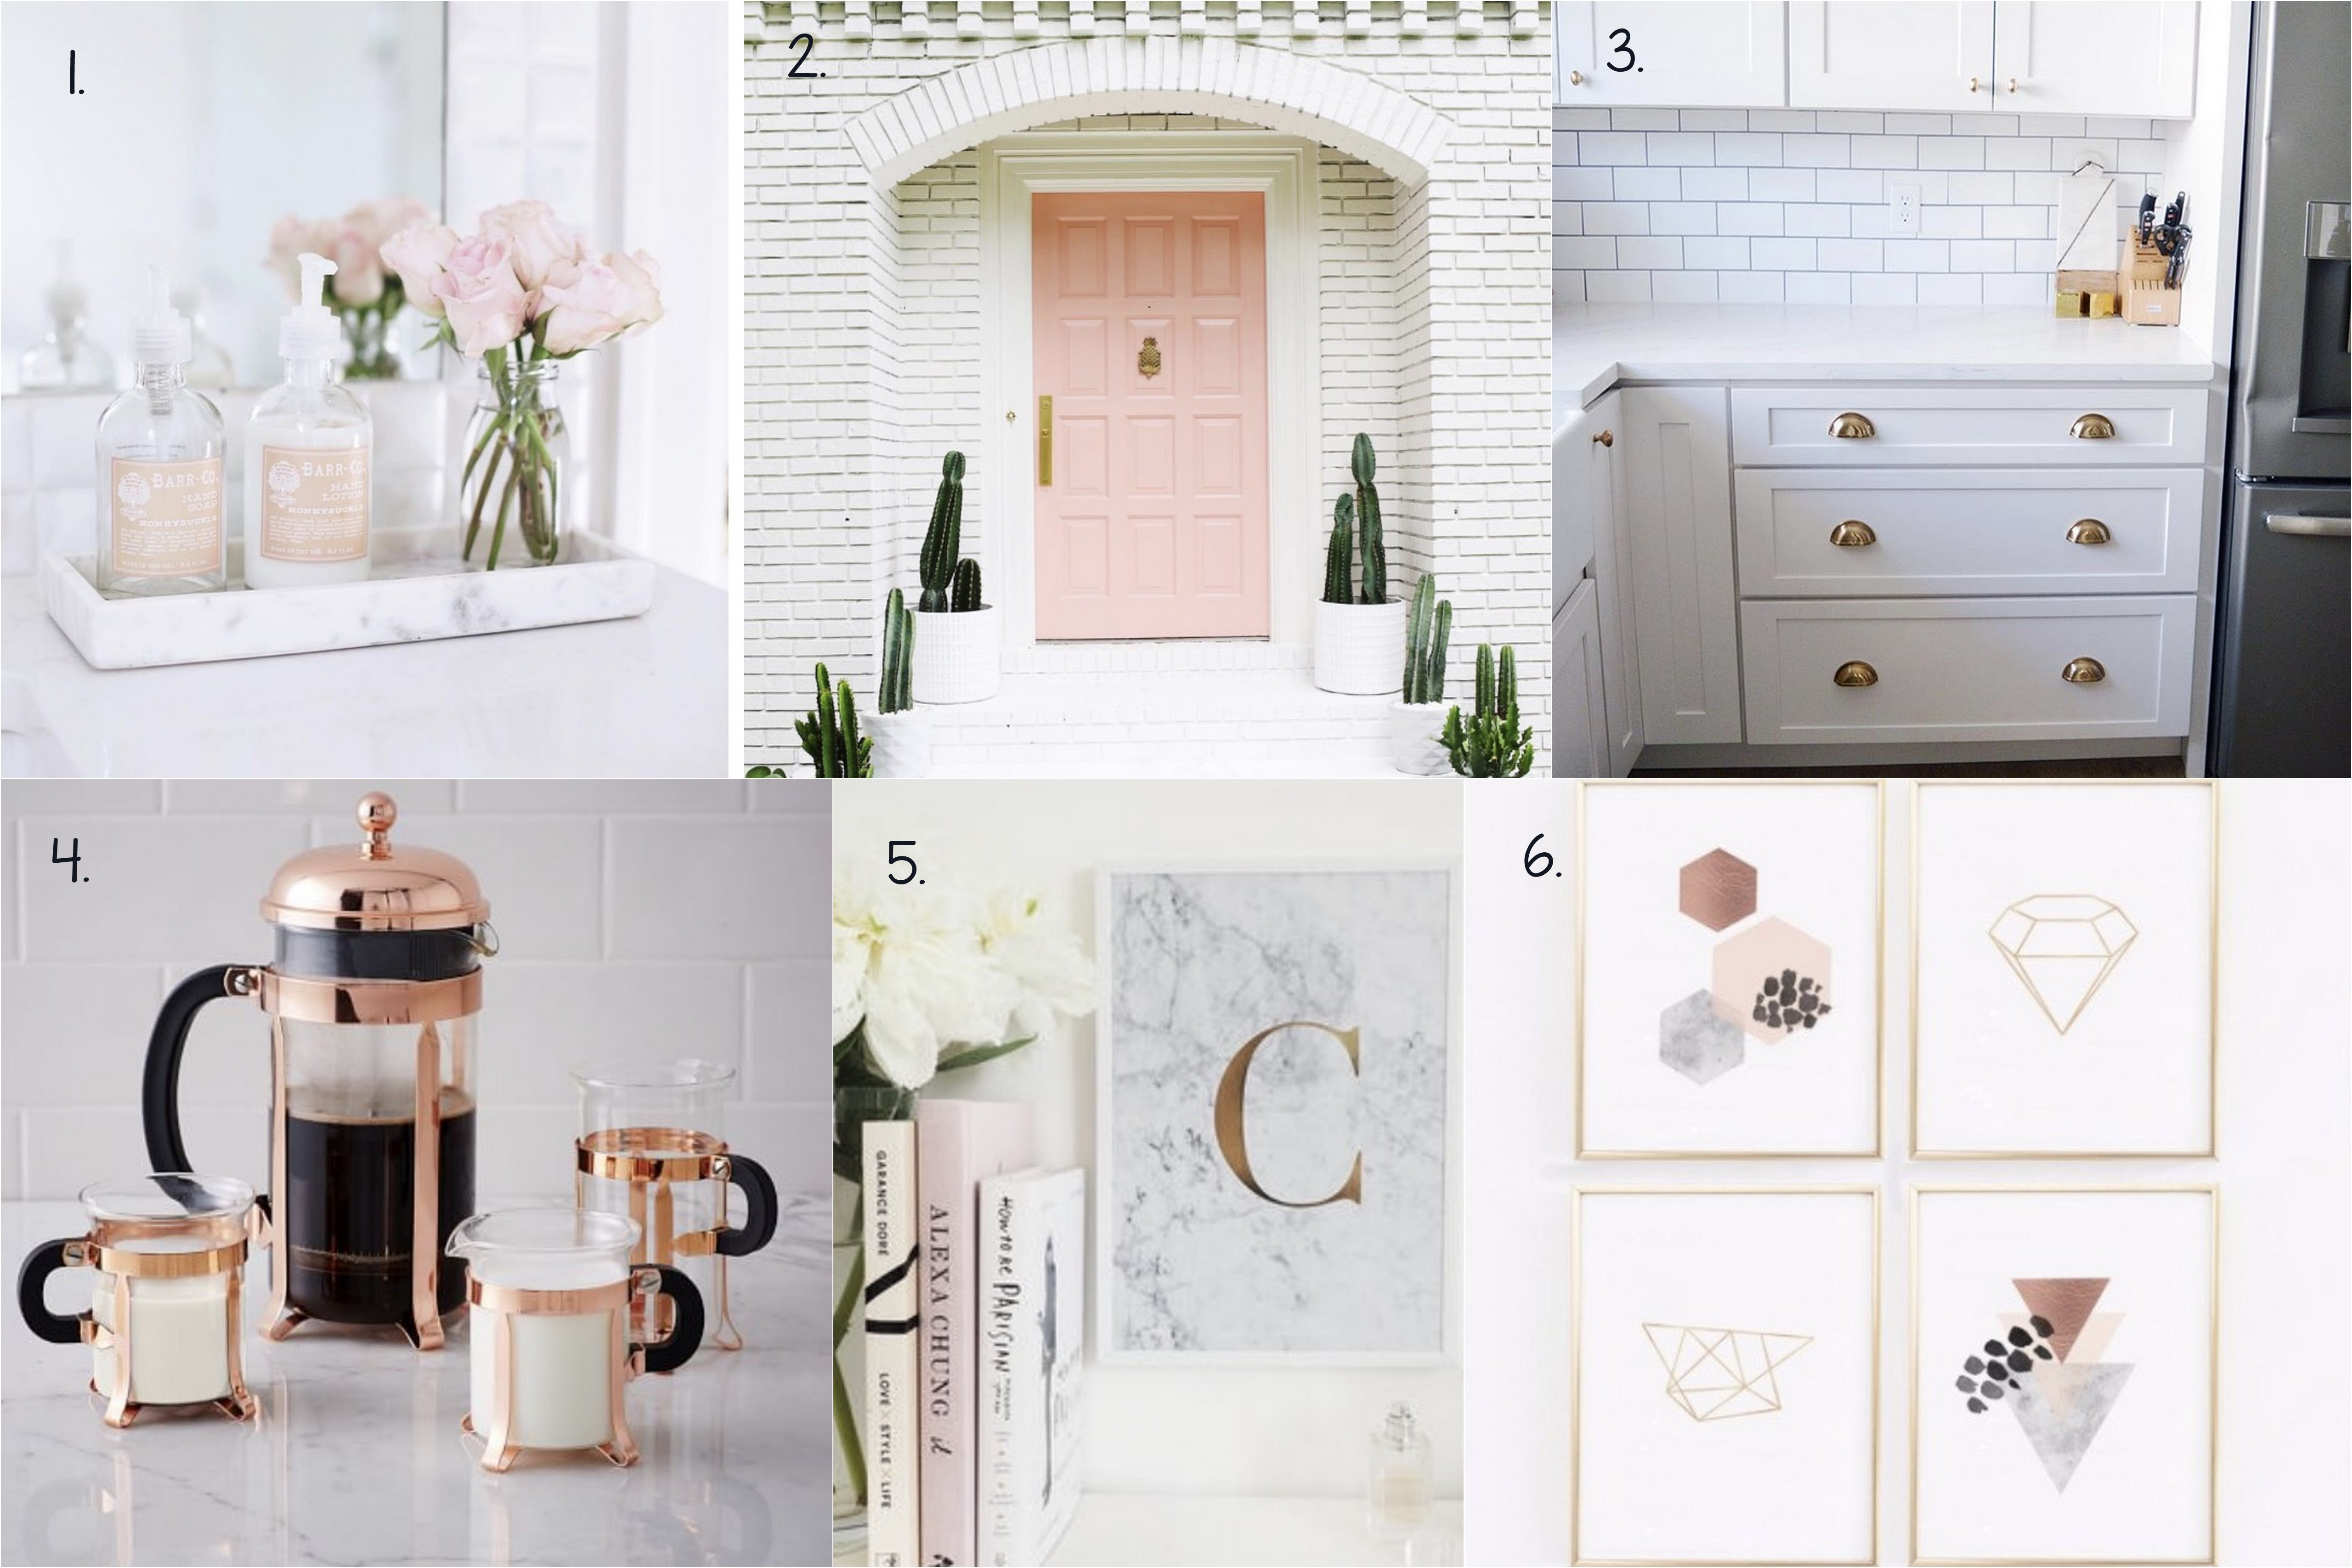 ... Board All About Blush, Copper, And Marble, I Thought I Would Share With  You A Few Of My Favorite Fancy Finds That Could Work For Just About Any Home .